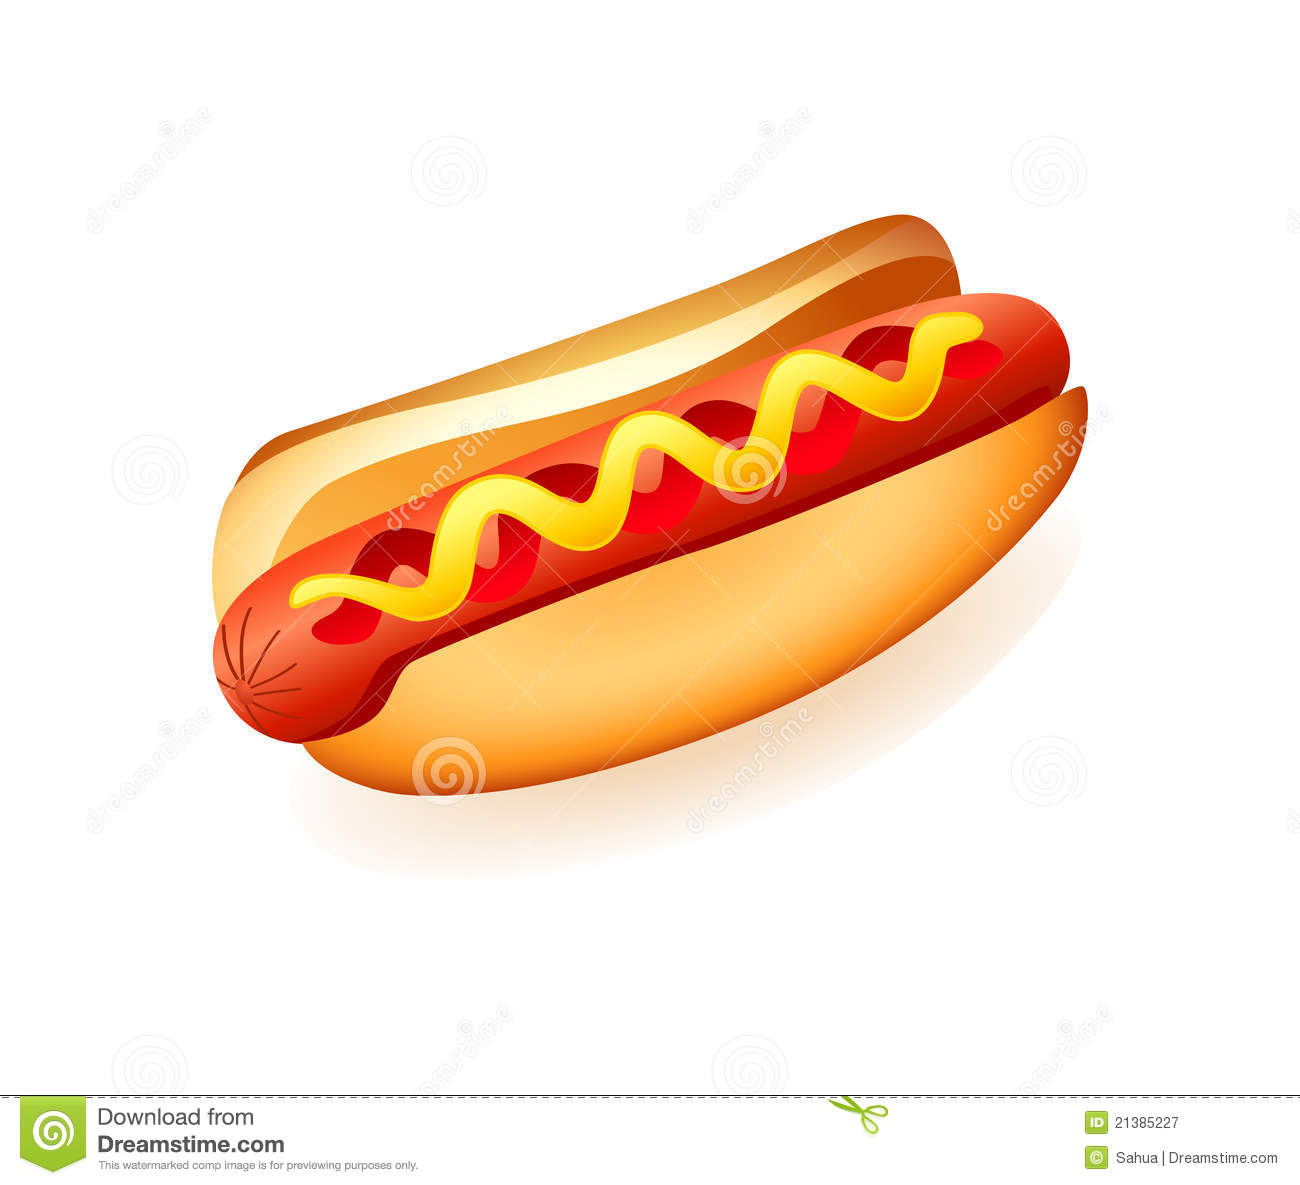 hot dog royalty free stock photography image 21385227 tomato clipart images tomato clipart black and white